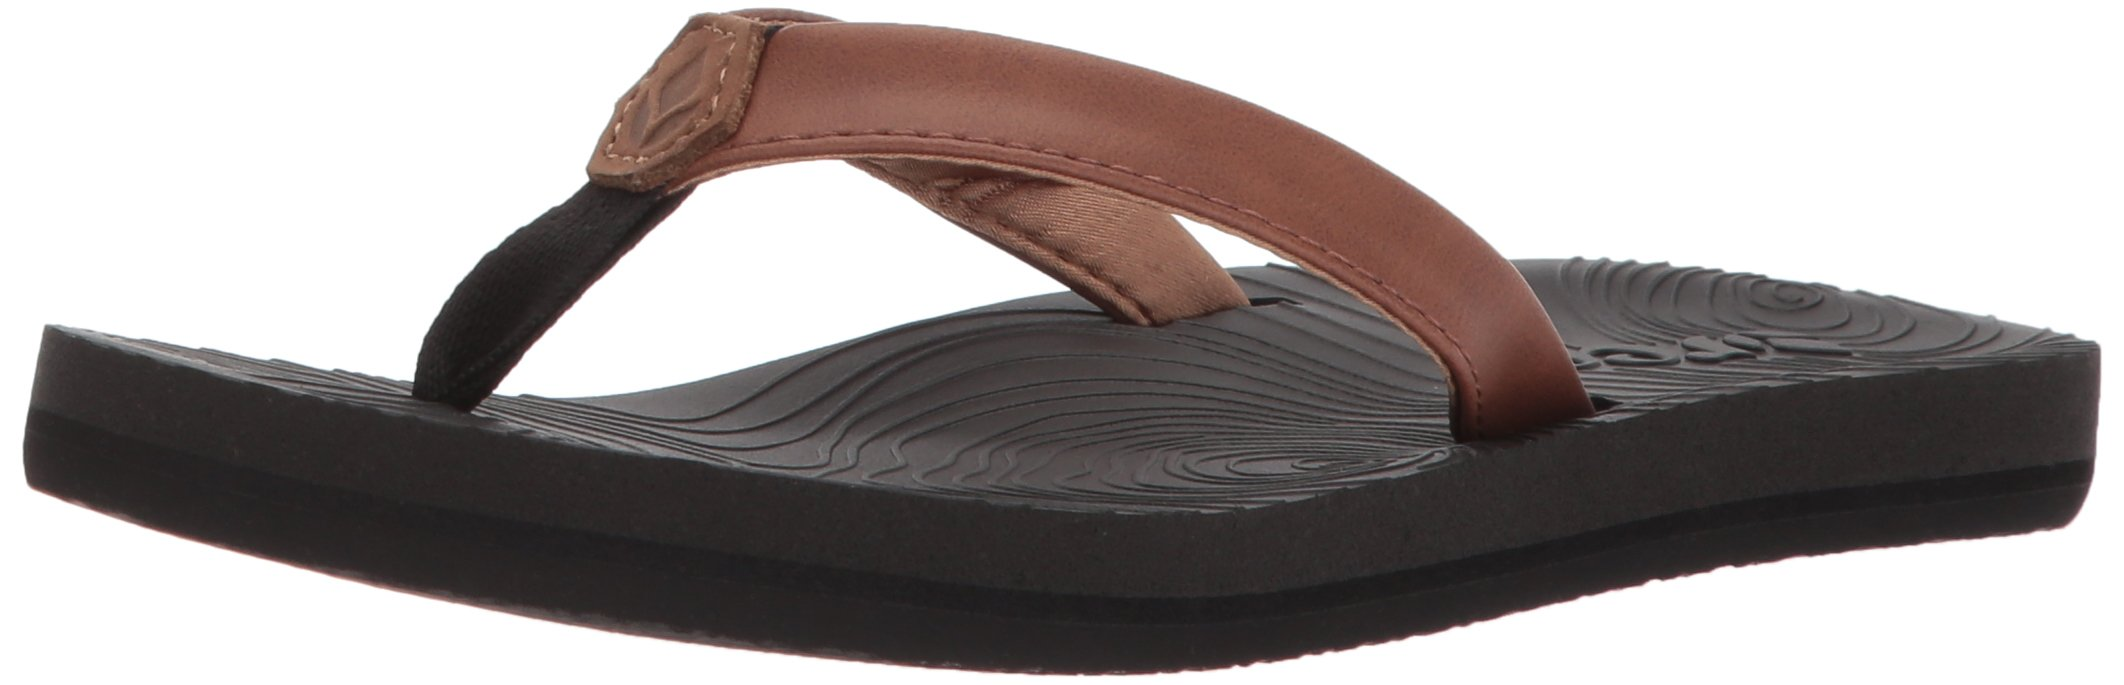 Reef Women's Zen Love Sandal, Espresso, 6 M US